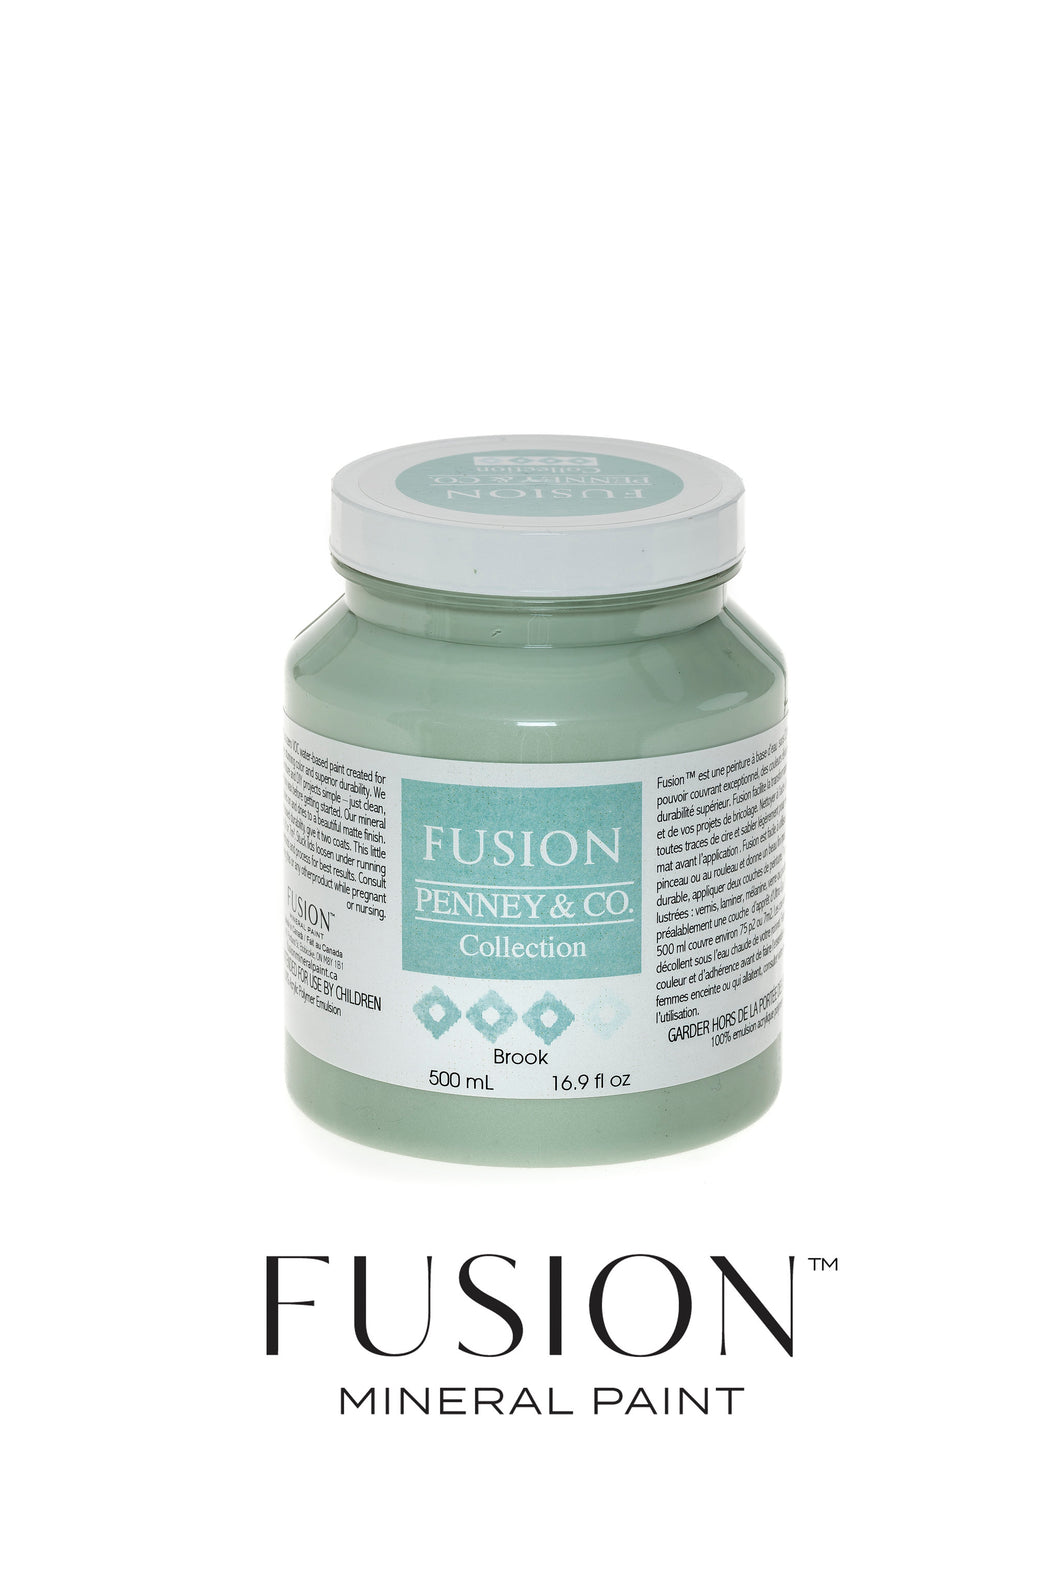 Brook - Fusion™ Mineral Paint